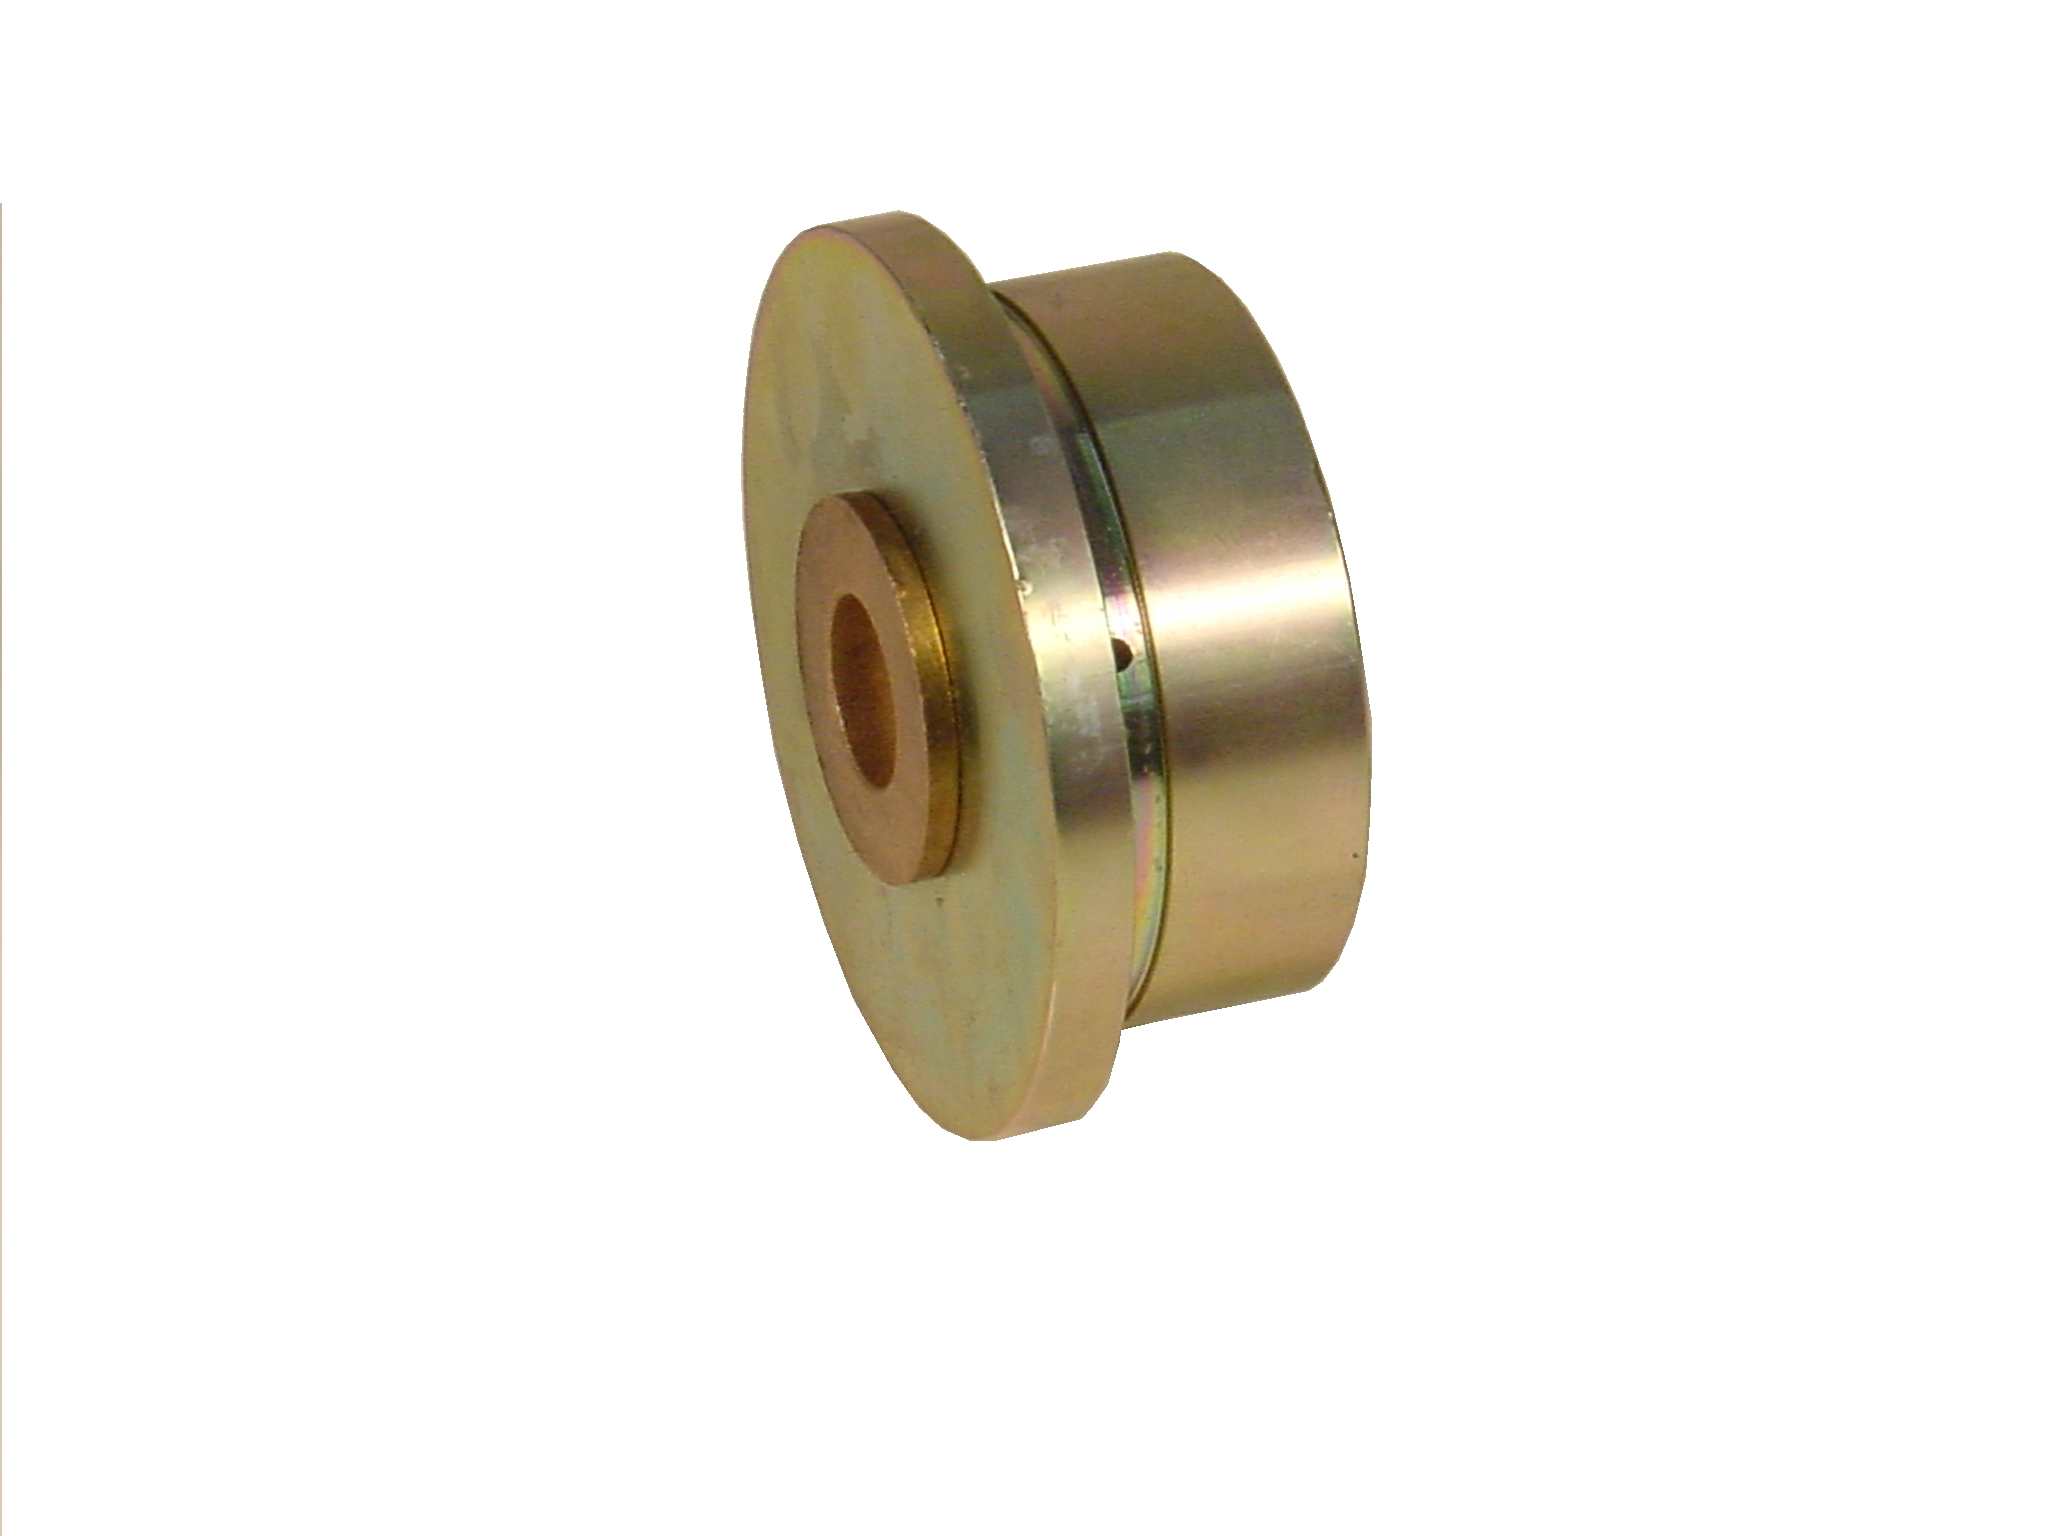 lower-carriage-roller-pw215b808g01